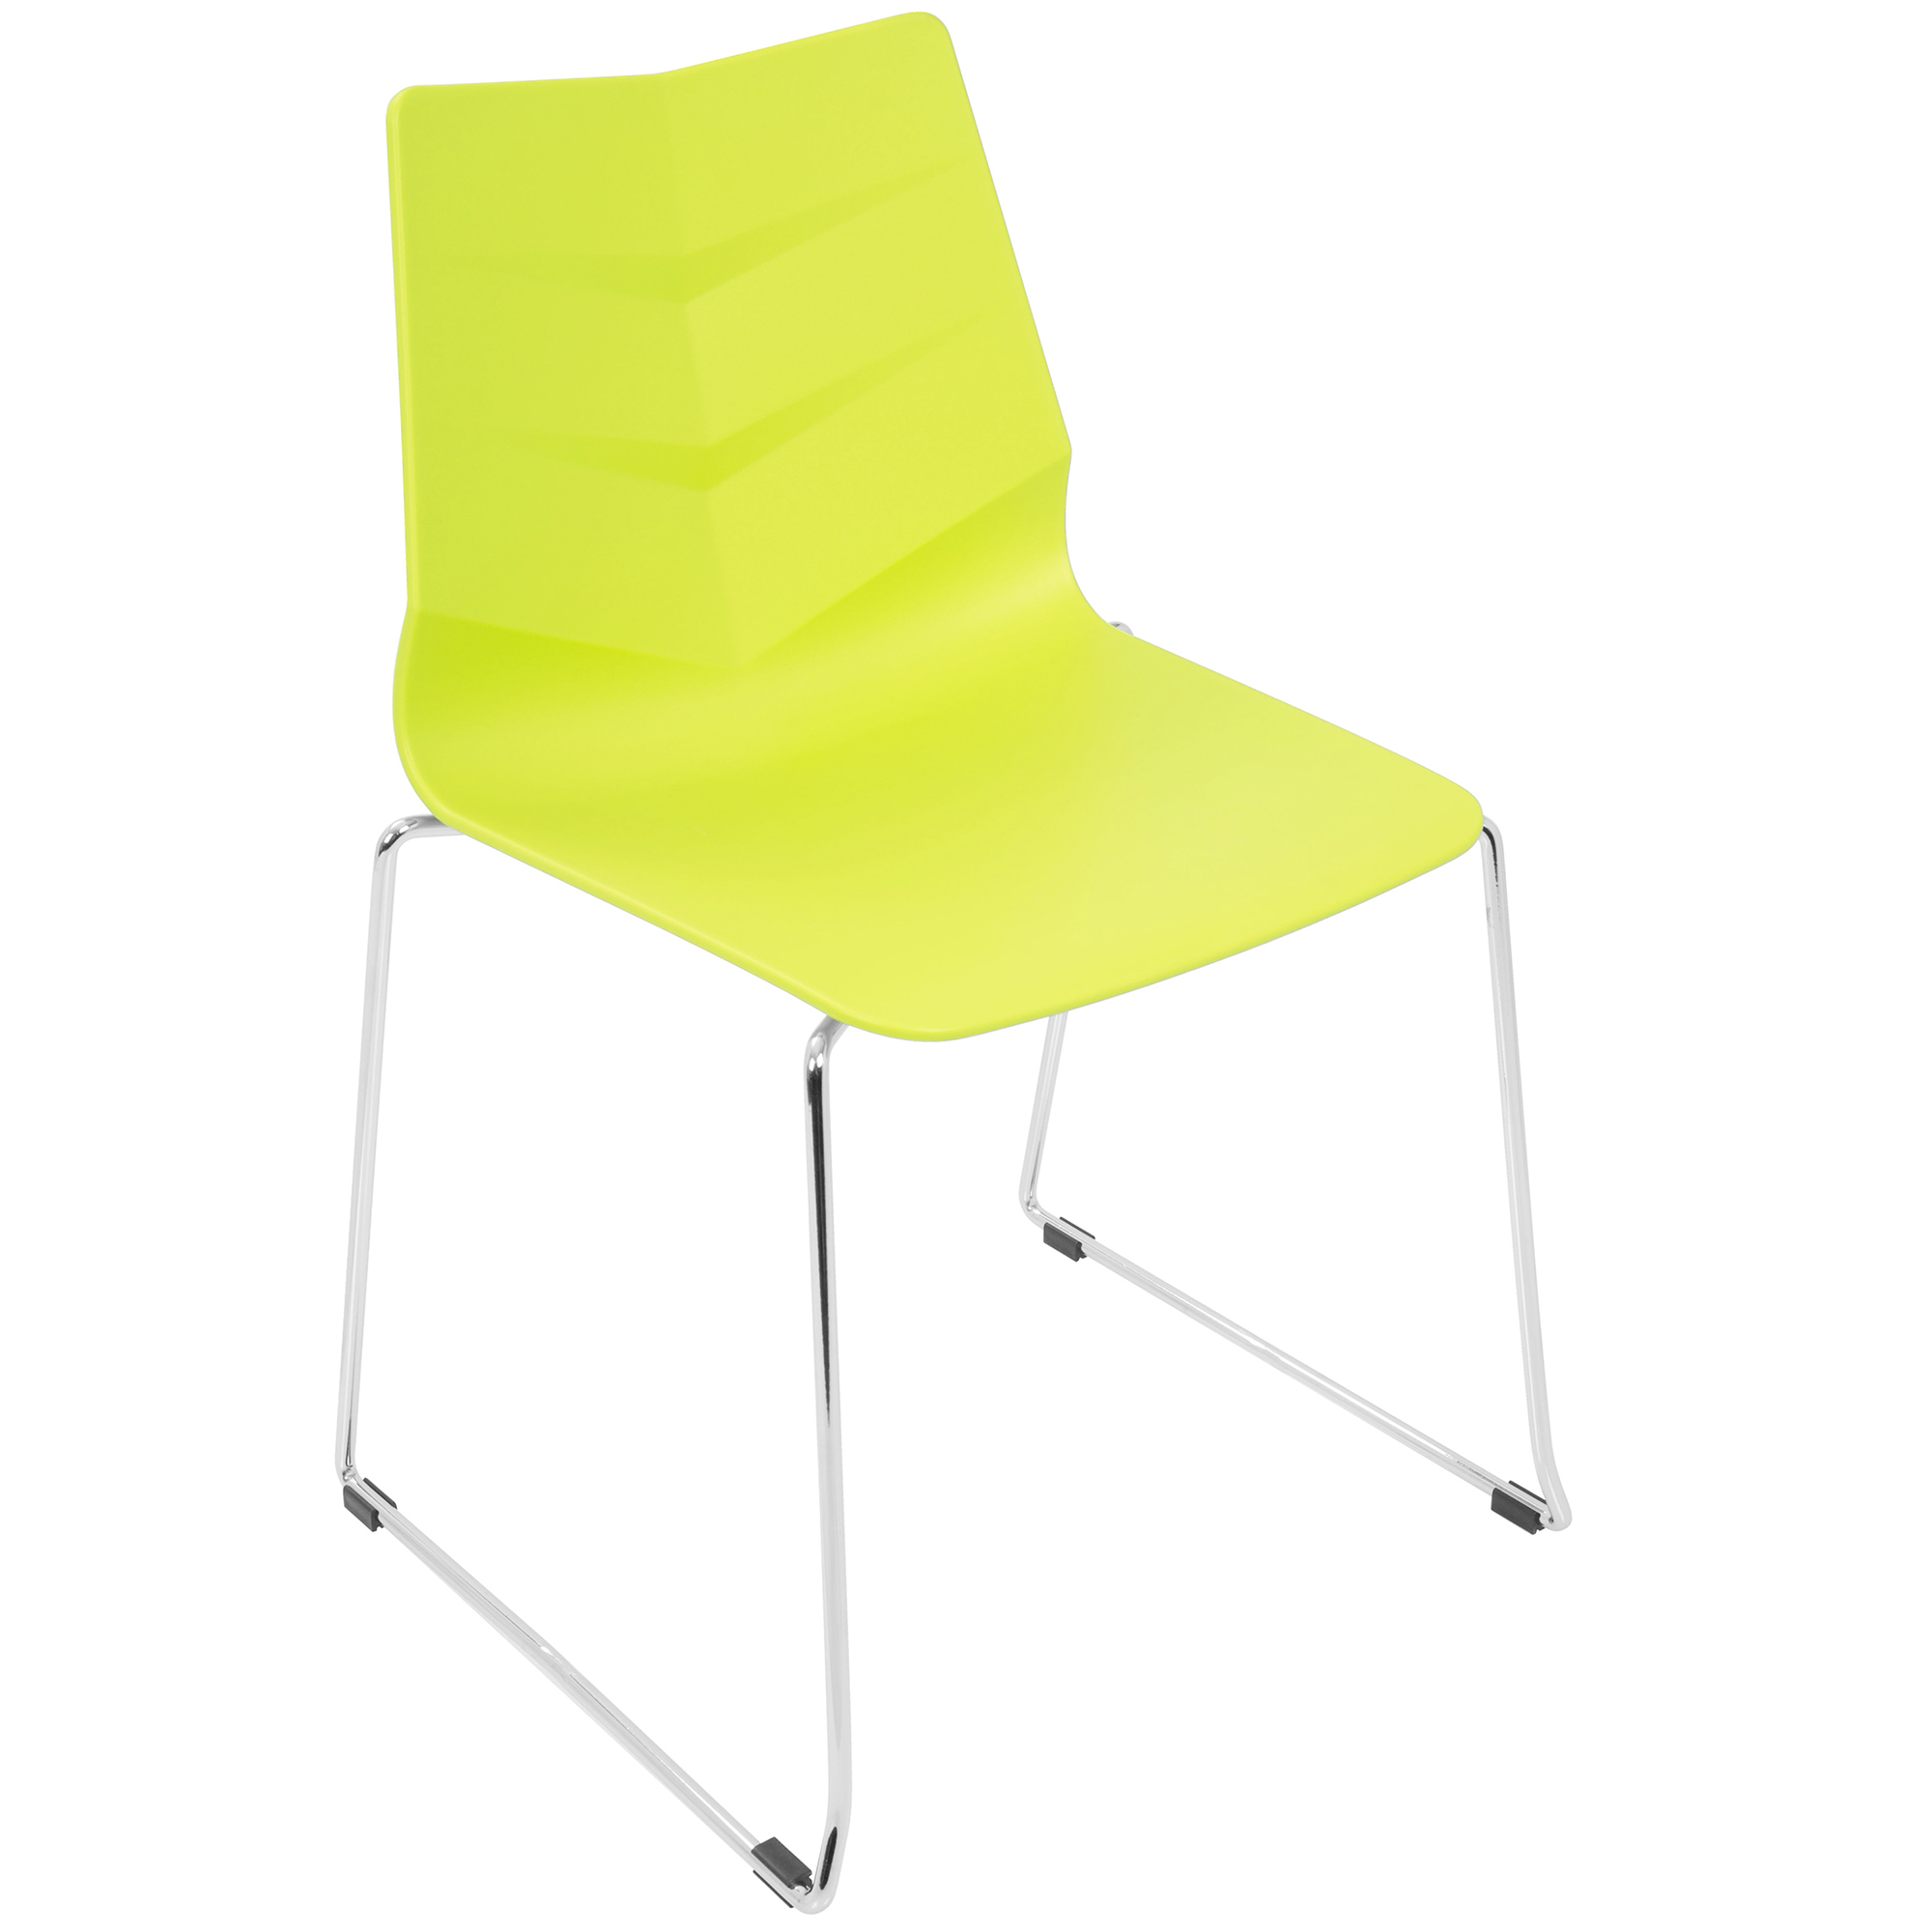 Arrow Contemporary Dining Chair in Lime Green by Lumisource Set of 2 by LumiSource